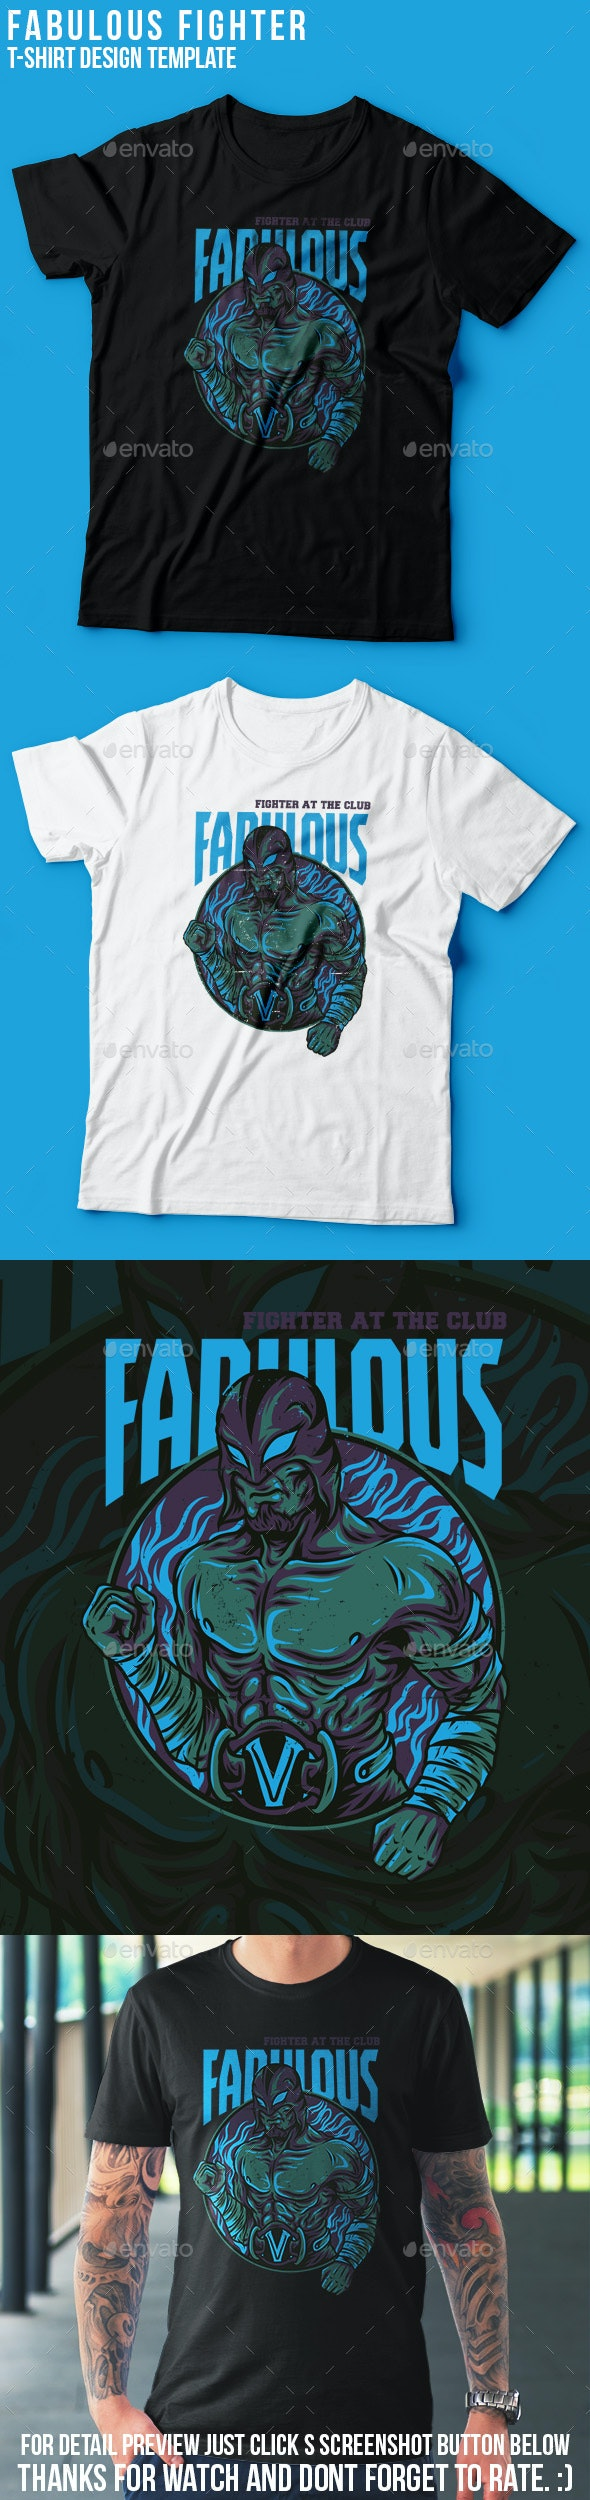 Fabulous Fighter T-Shirt Design - Academic T-Shirts